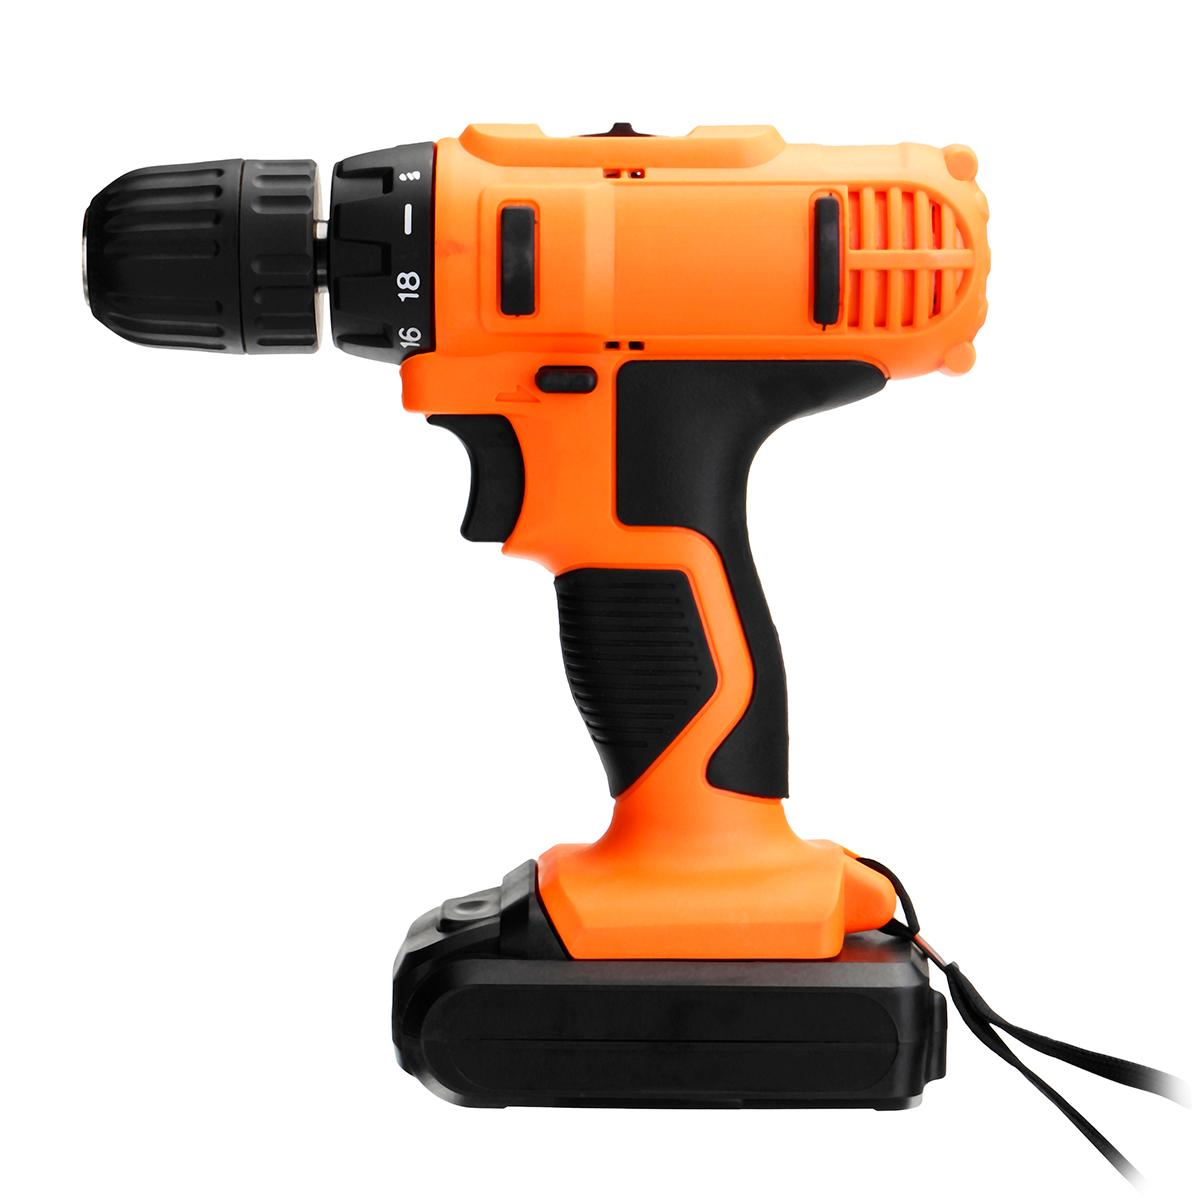 18V 20N.m DC Lithium-Ion Battery Cordless Drill/Driver Power Tools Set Screwdriver Electric Drill Kit18V 20N.m DC Lithium-Ion Battery Cordless Drill/Driver Power Tools Set Screwdriver Electric Drill Kit